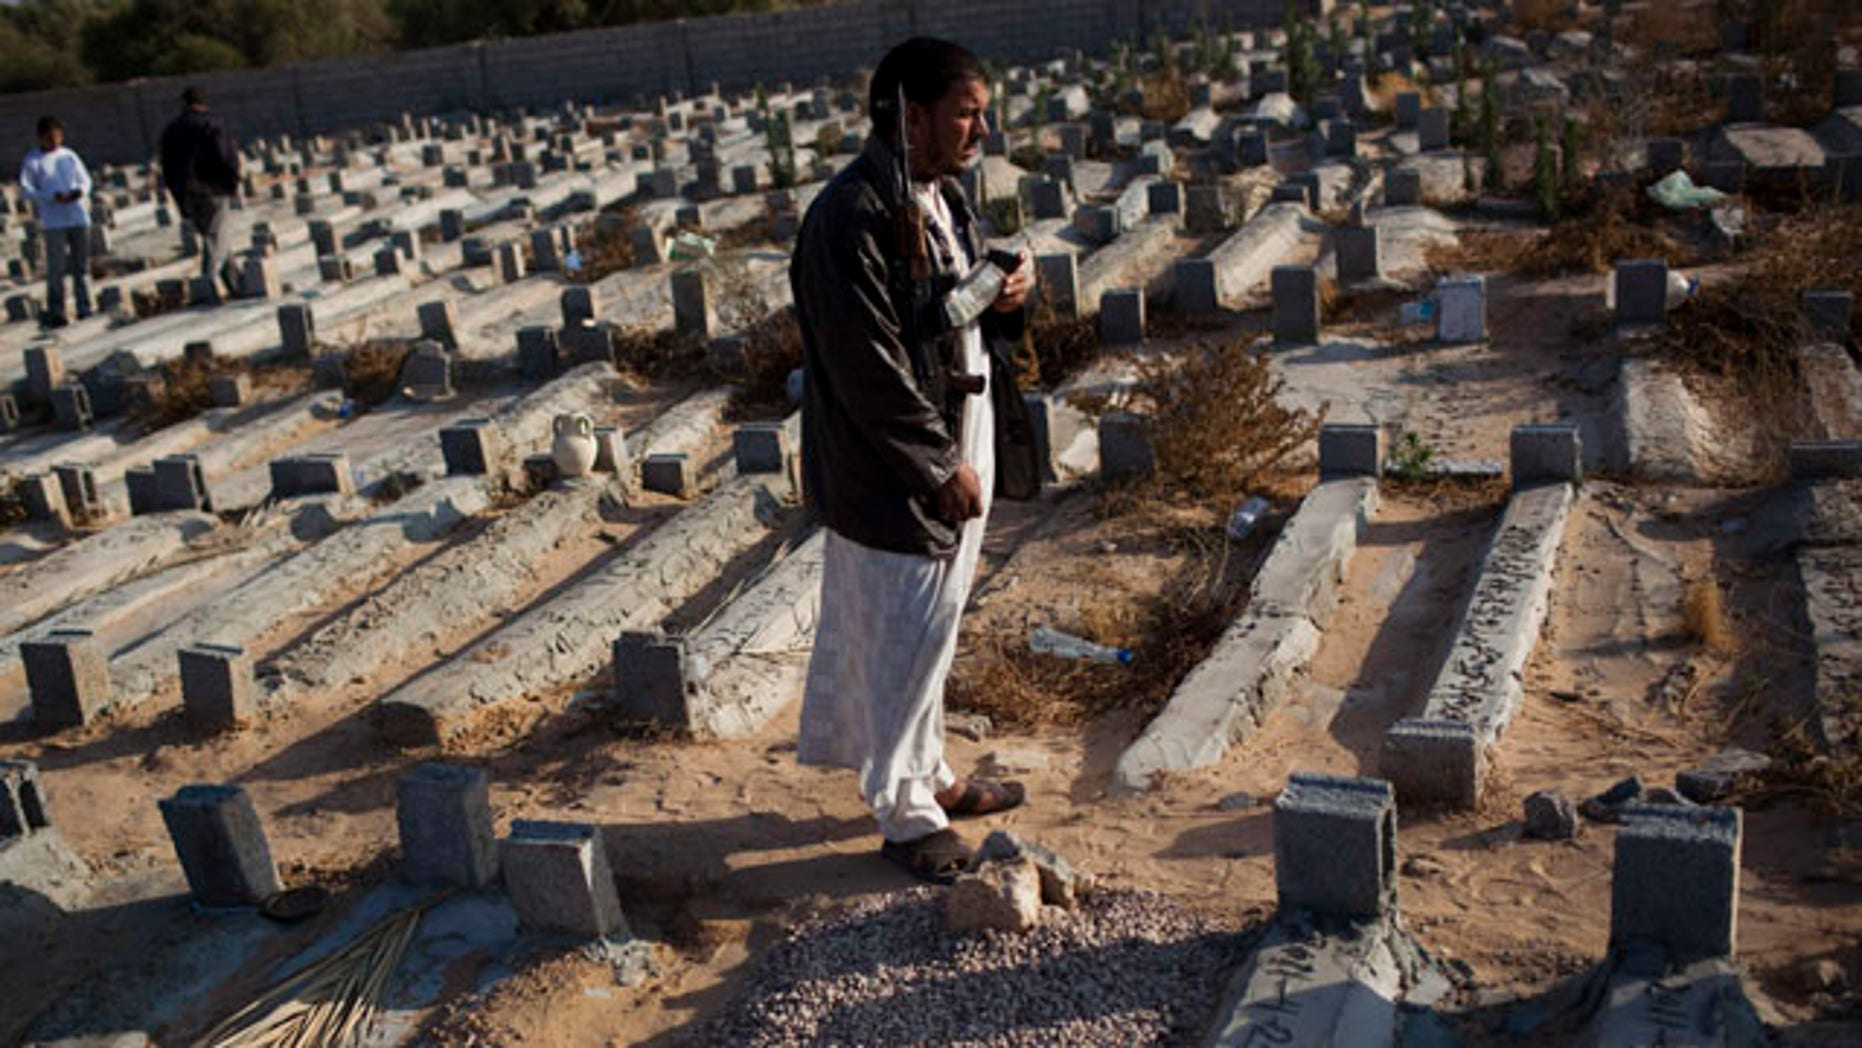 May 26: Faissel Omran Dehik stands next to the tomb of his brother who was killed a week ago during fighting against Qaddafi forces on the outskirts of Misrata, Libya. For the first time, pro-Qaddafi forces expressed interest to speak with the rebels.